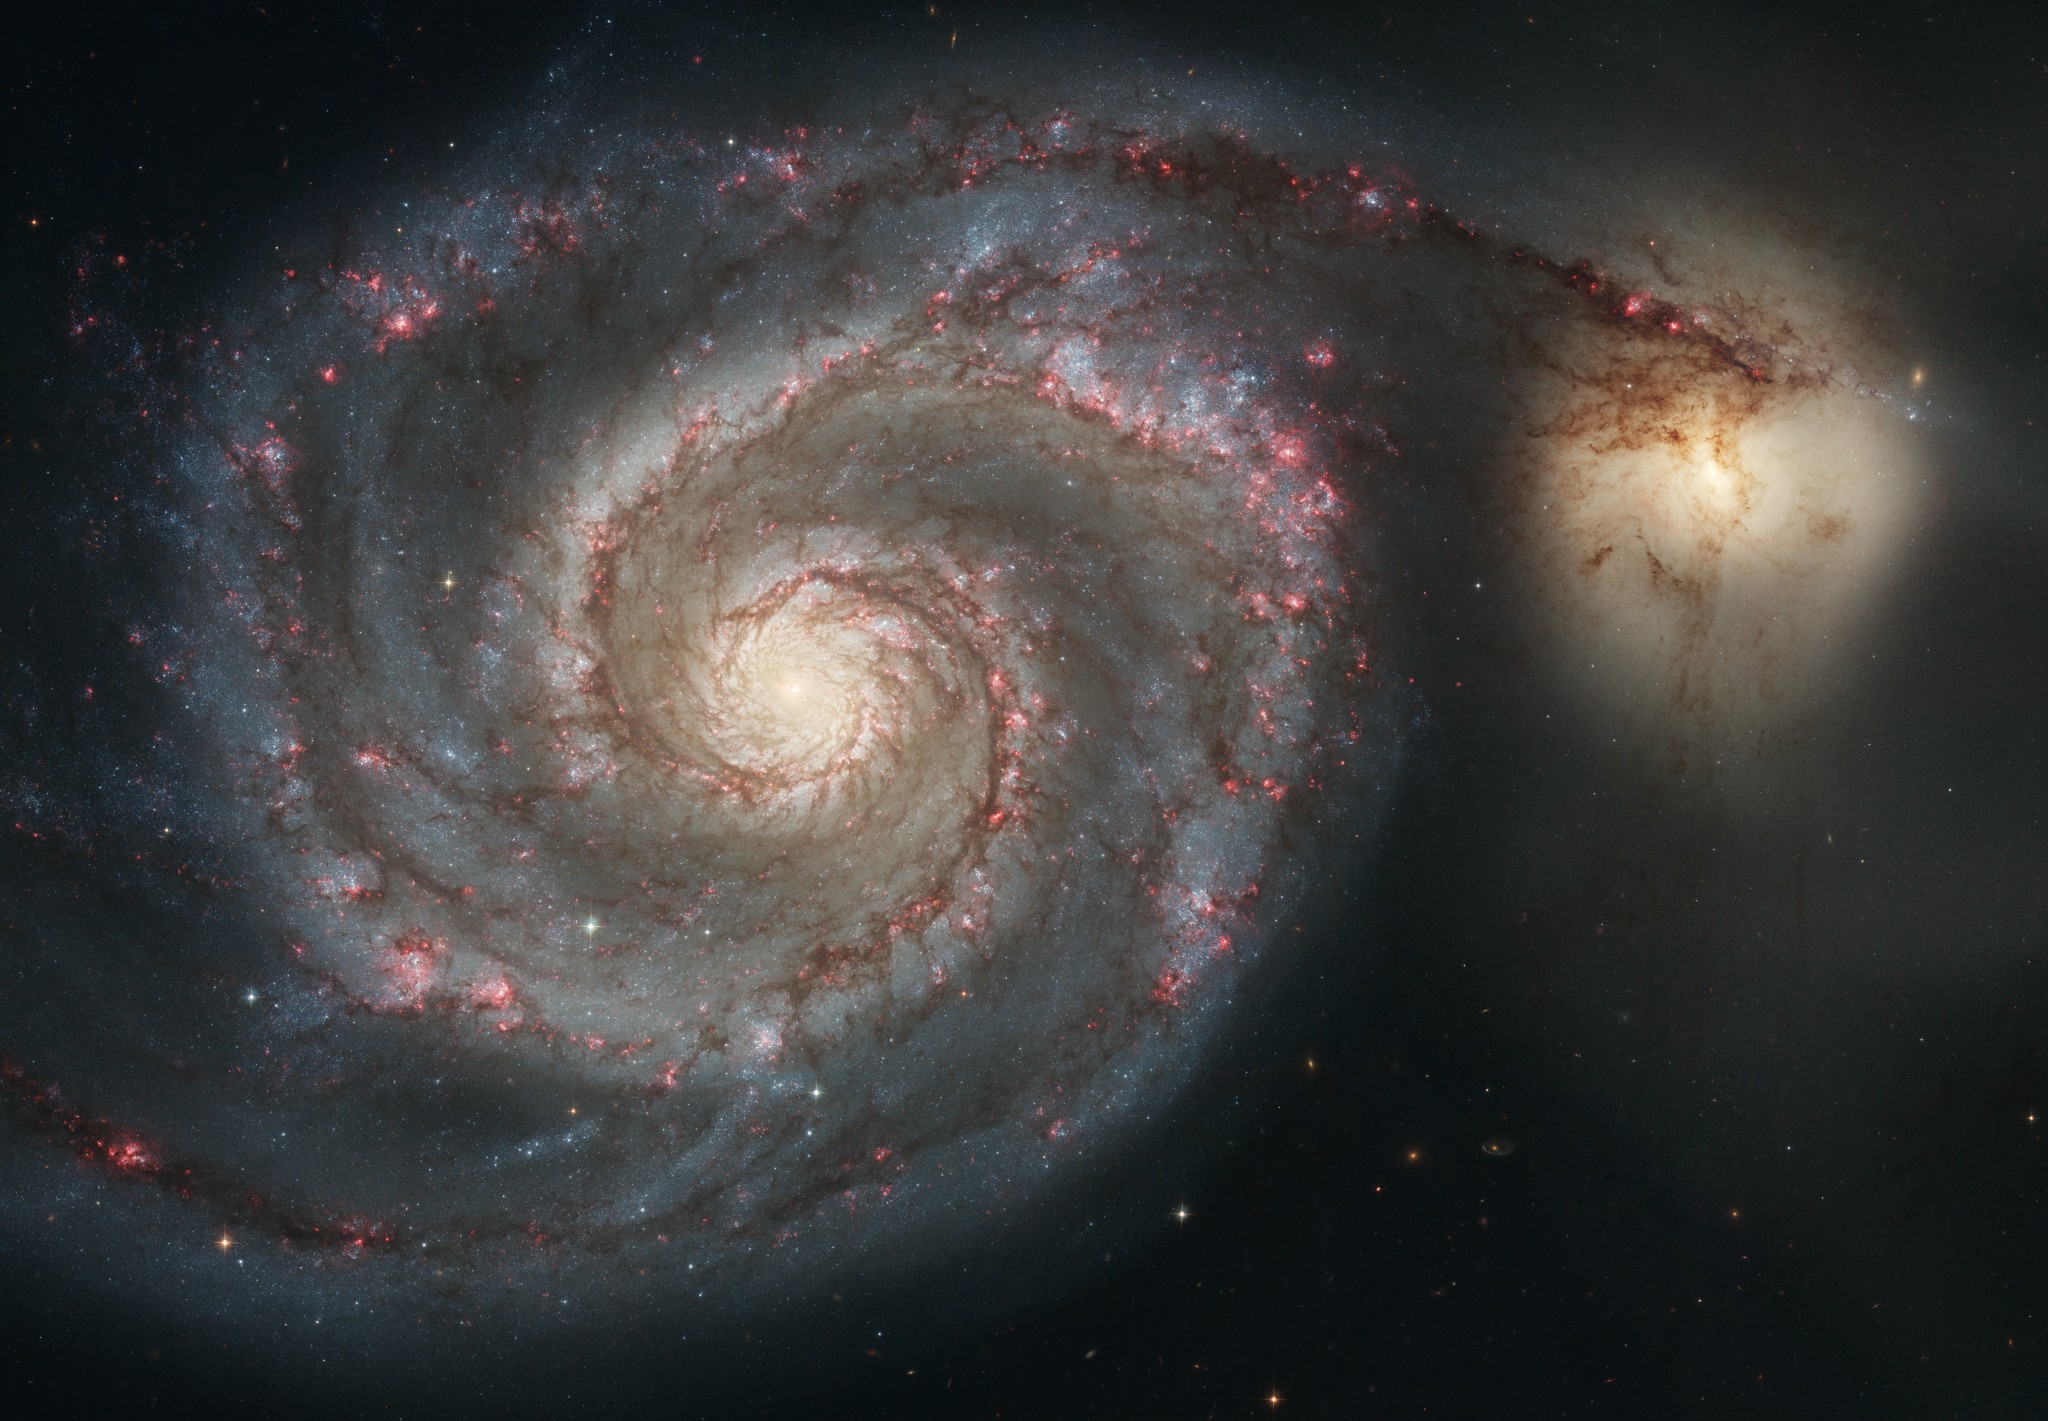 A Hubble photo of the Whirlpool Galaxy